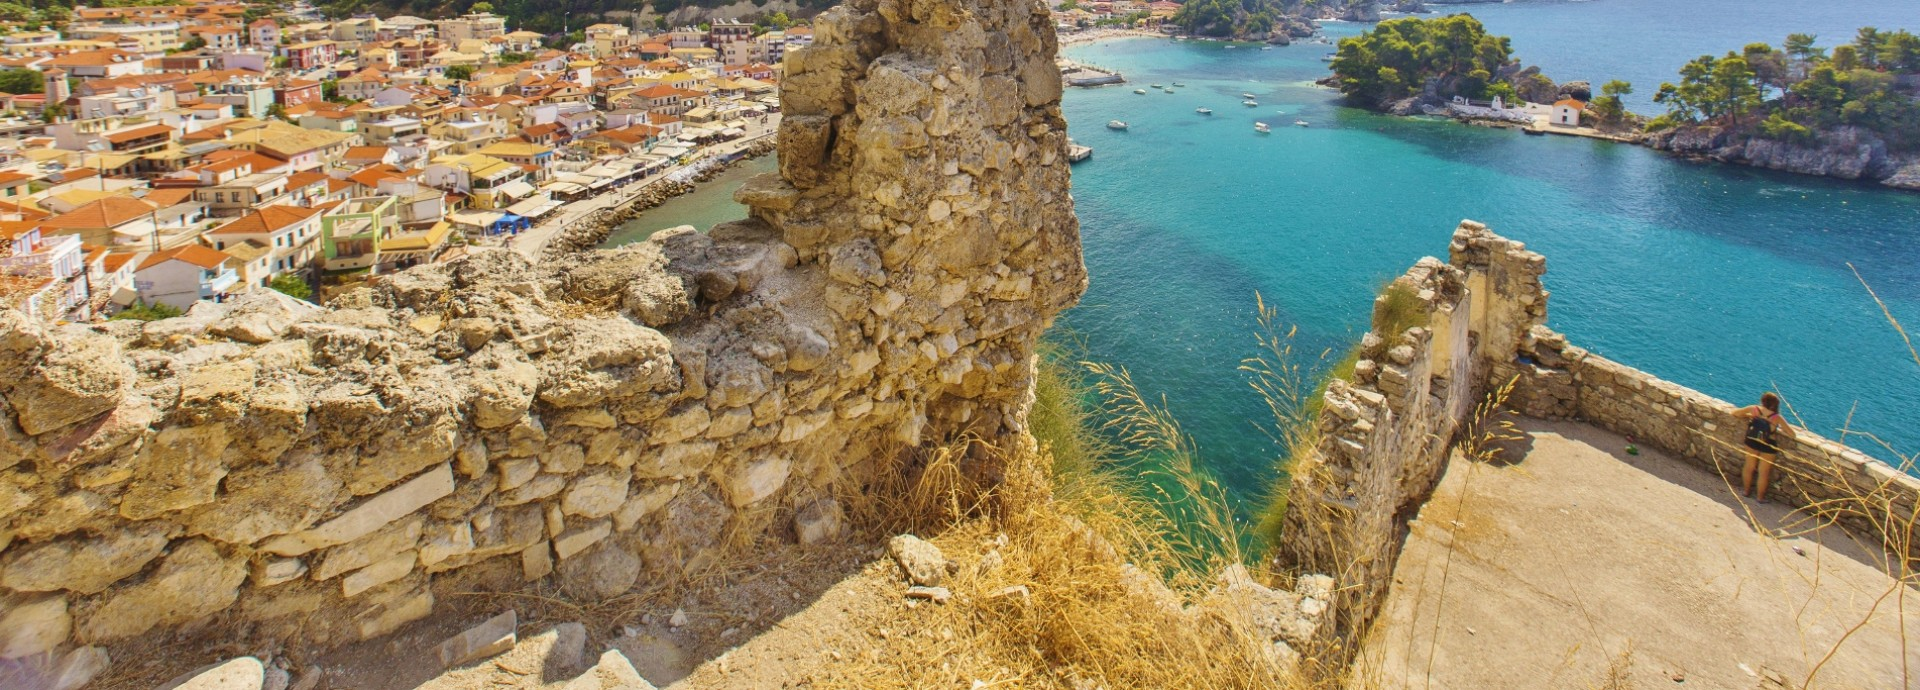 Parga Town View from the Fort - taken by David Bentley